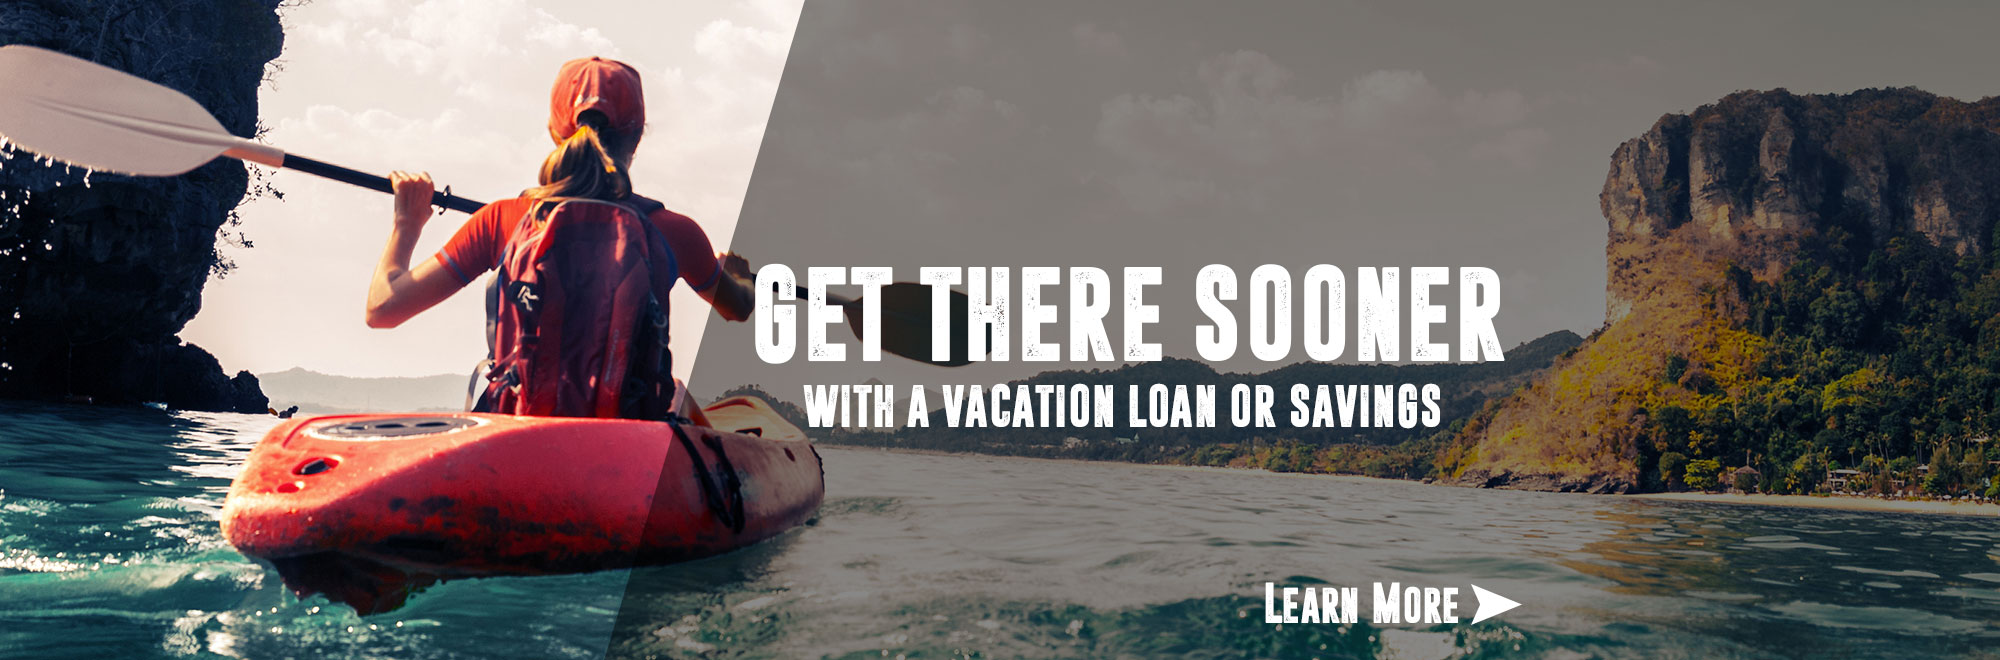 Get there sooner with a loan